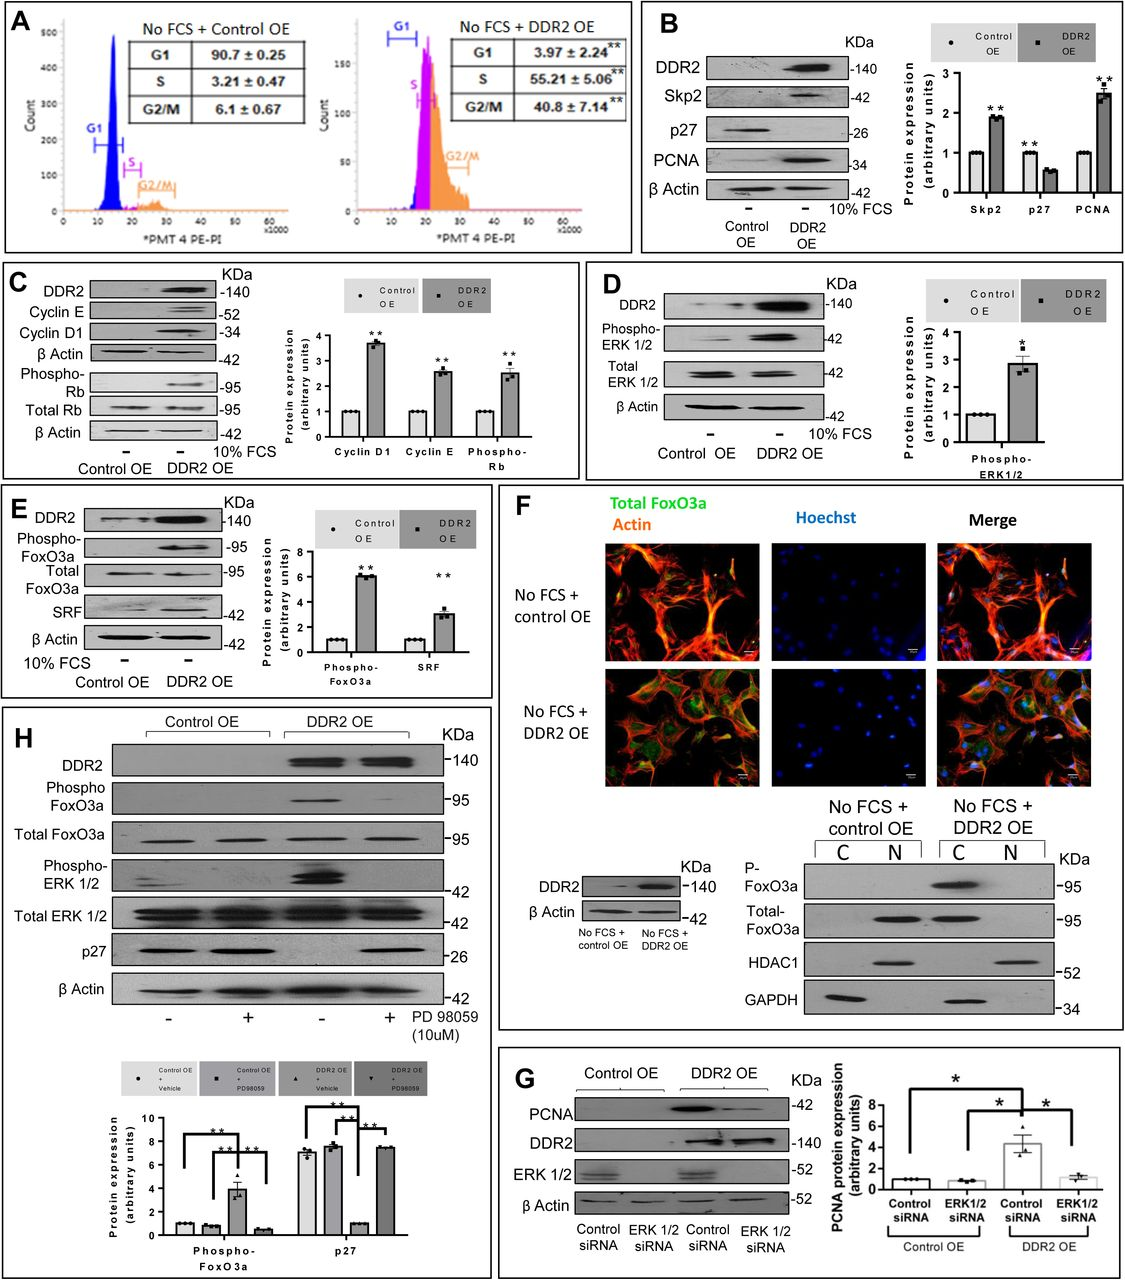 DDR2 over-expression facilitates G1-S transition in mitogen-deprived cardiac fibroblasts. ( A-E ) Cardiac fibroblasts transfected with DDR2 cDNA over-expression plasmid (DDR2 OE) or empty vector control (Control OE) were subjected to western blot analysis (with β-actin as loading control) or flow cytometric analysis. Validation of DDR2 overexpression is also shown. ( A ) Flow cytometric profile of G1-S transition, showing distribution of cells in each phase. Significance was determined by Student's t test, **p